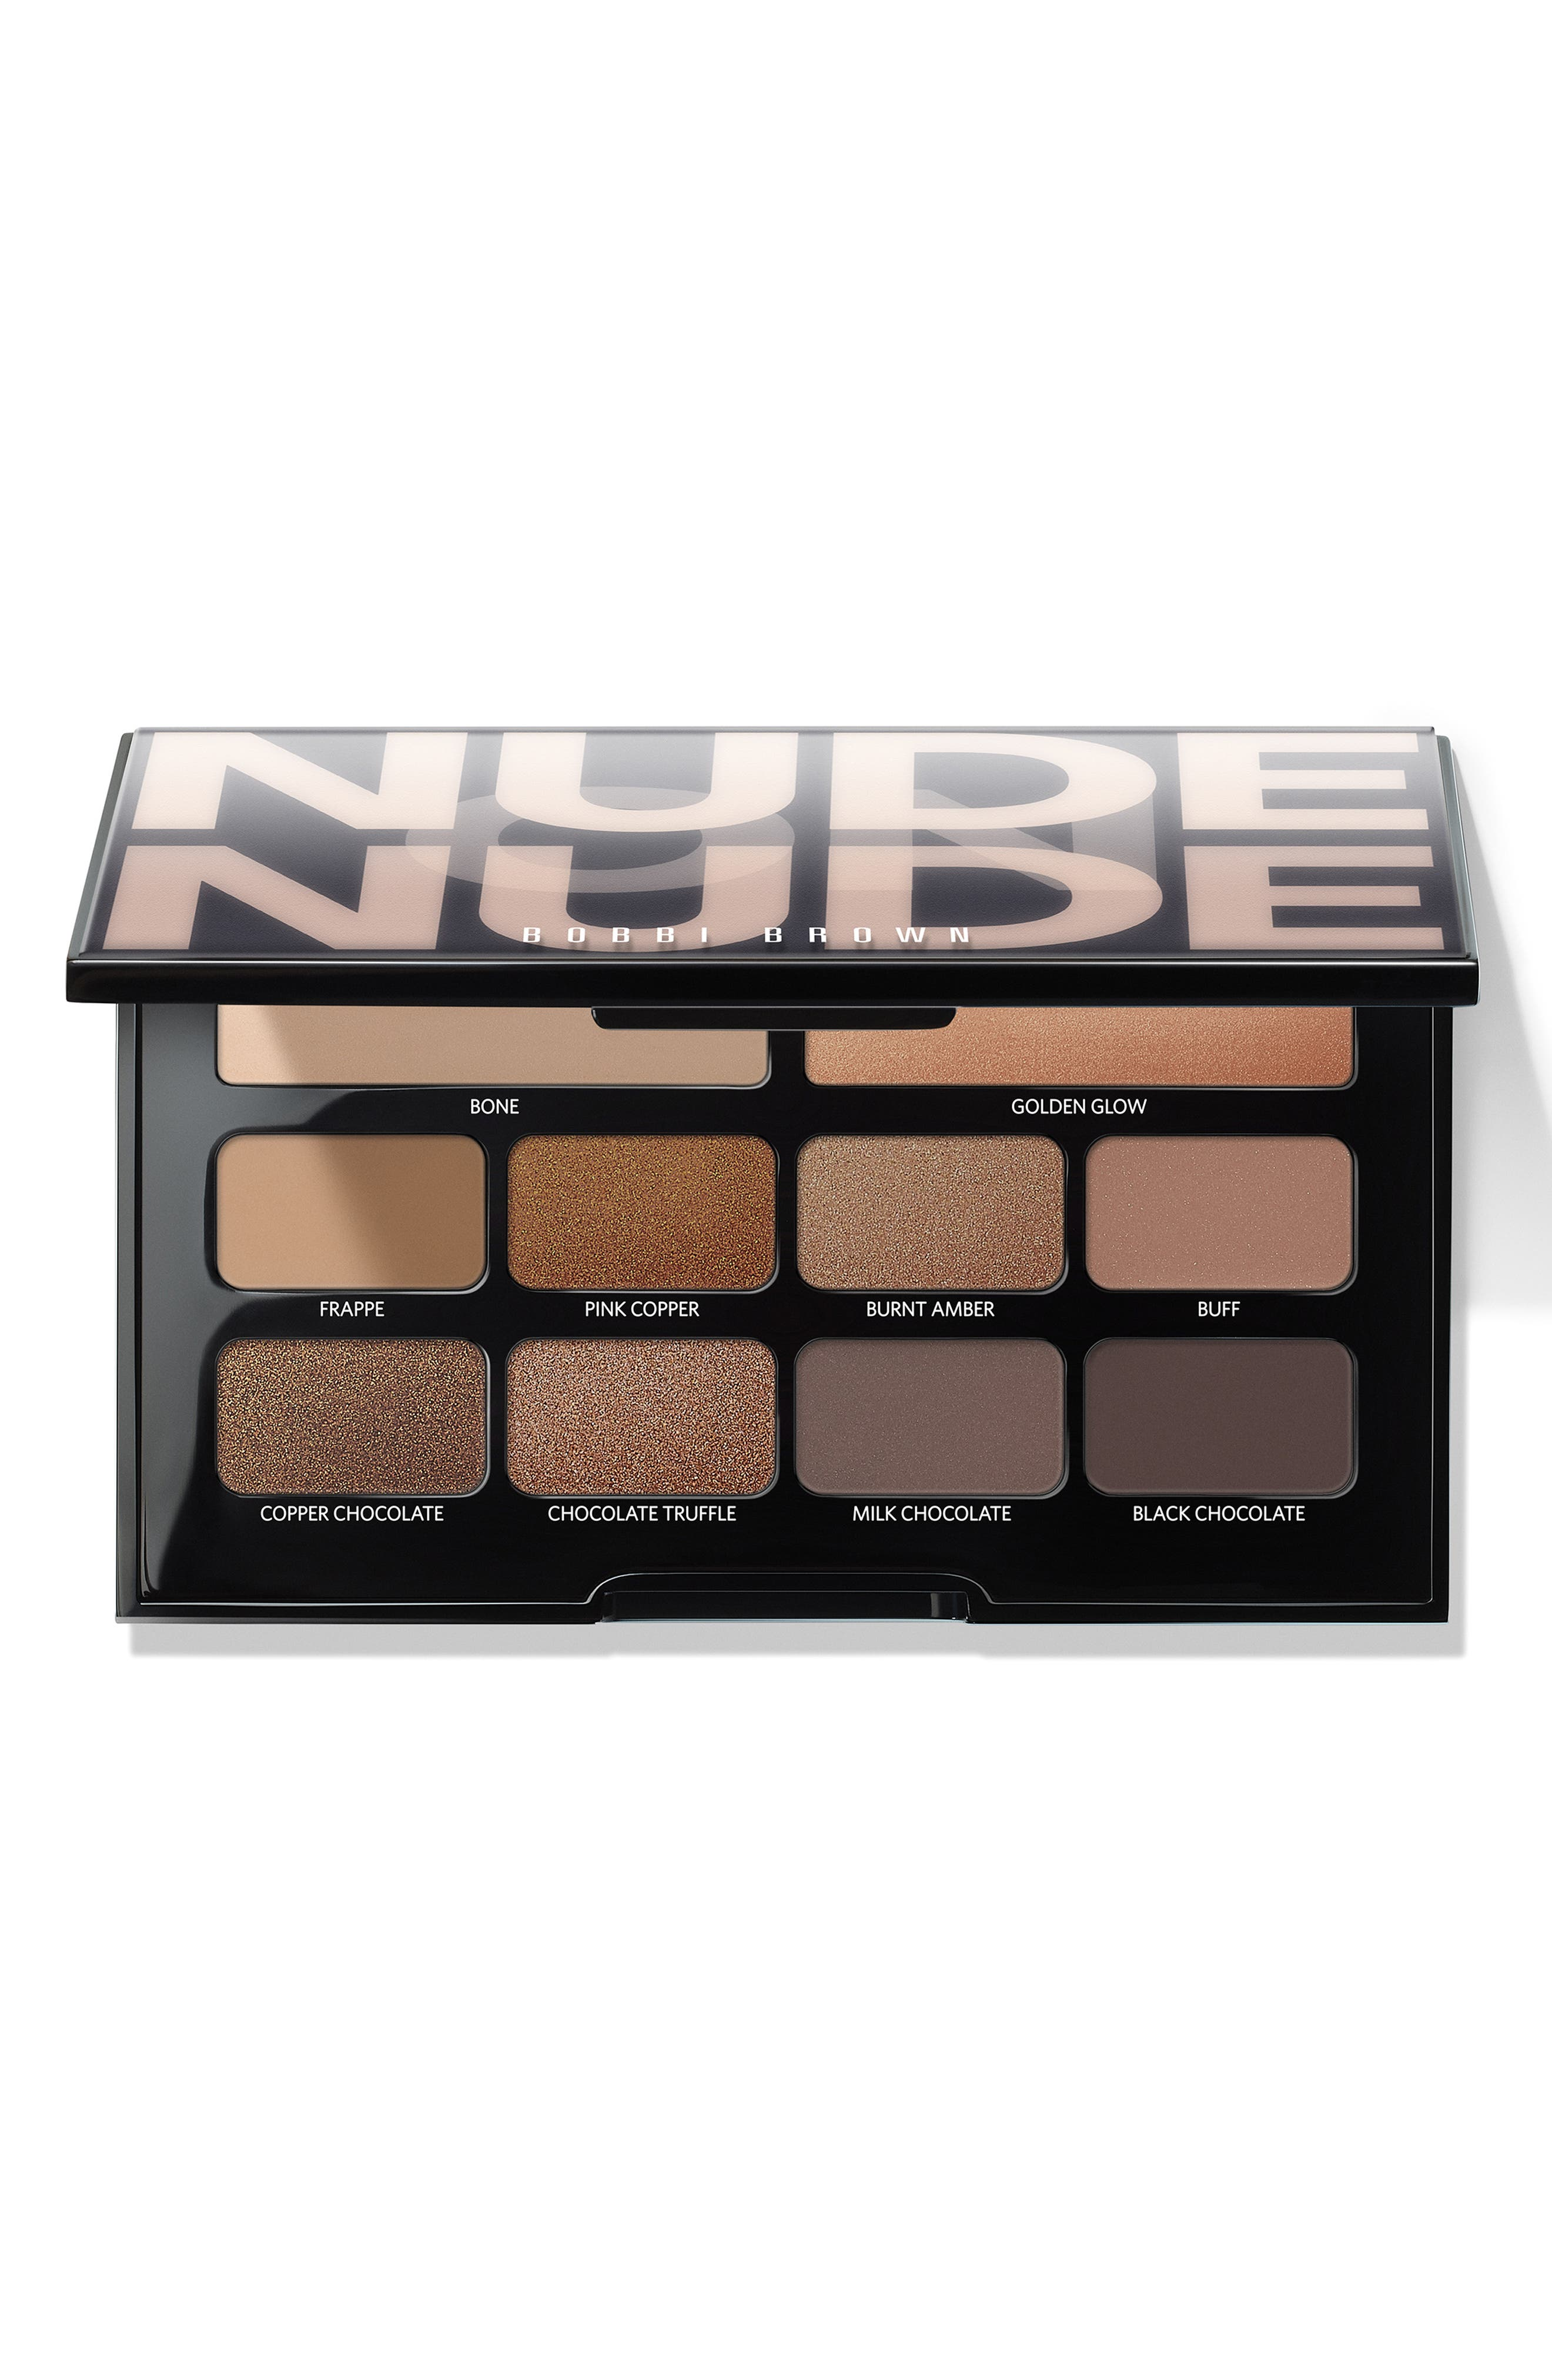 Nude on Nude Eyeshadow Palette,                             Main thumbnail 1, color,                             200